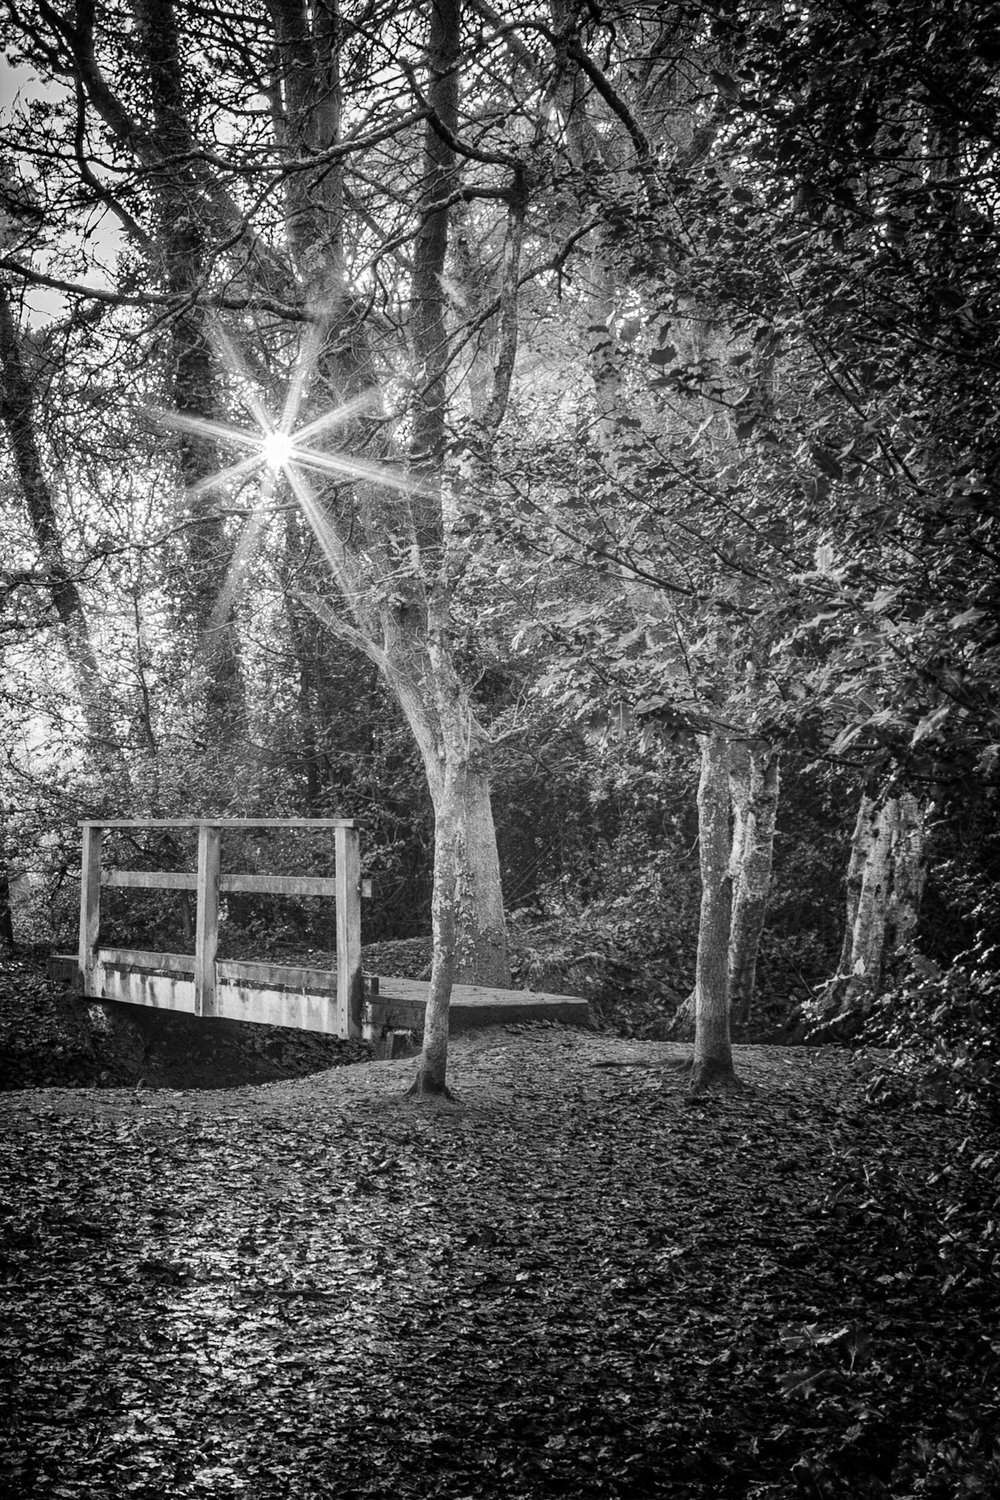 Footbridge in the woods, Poole, Dorset.